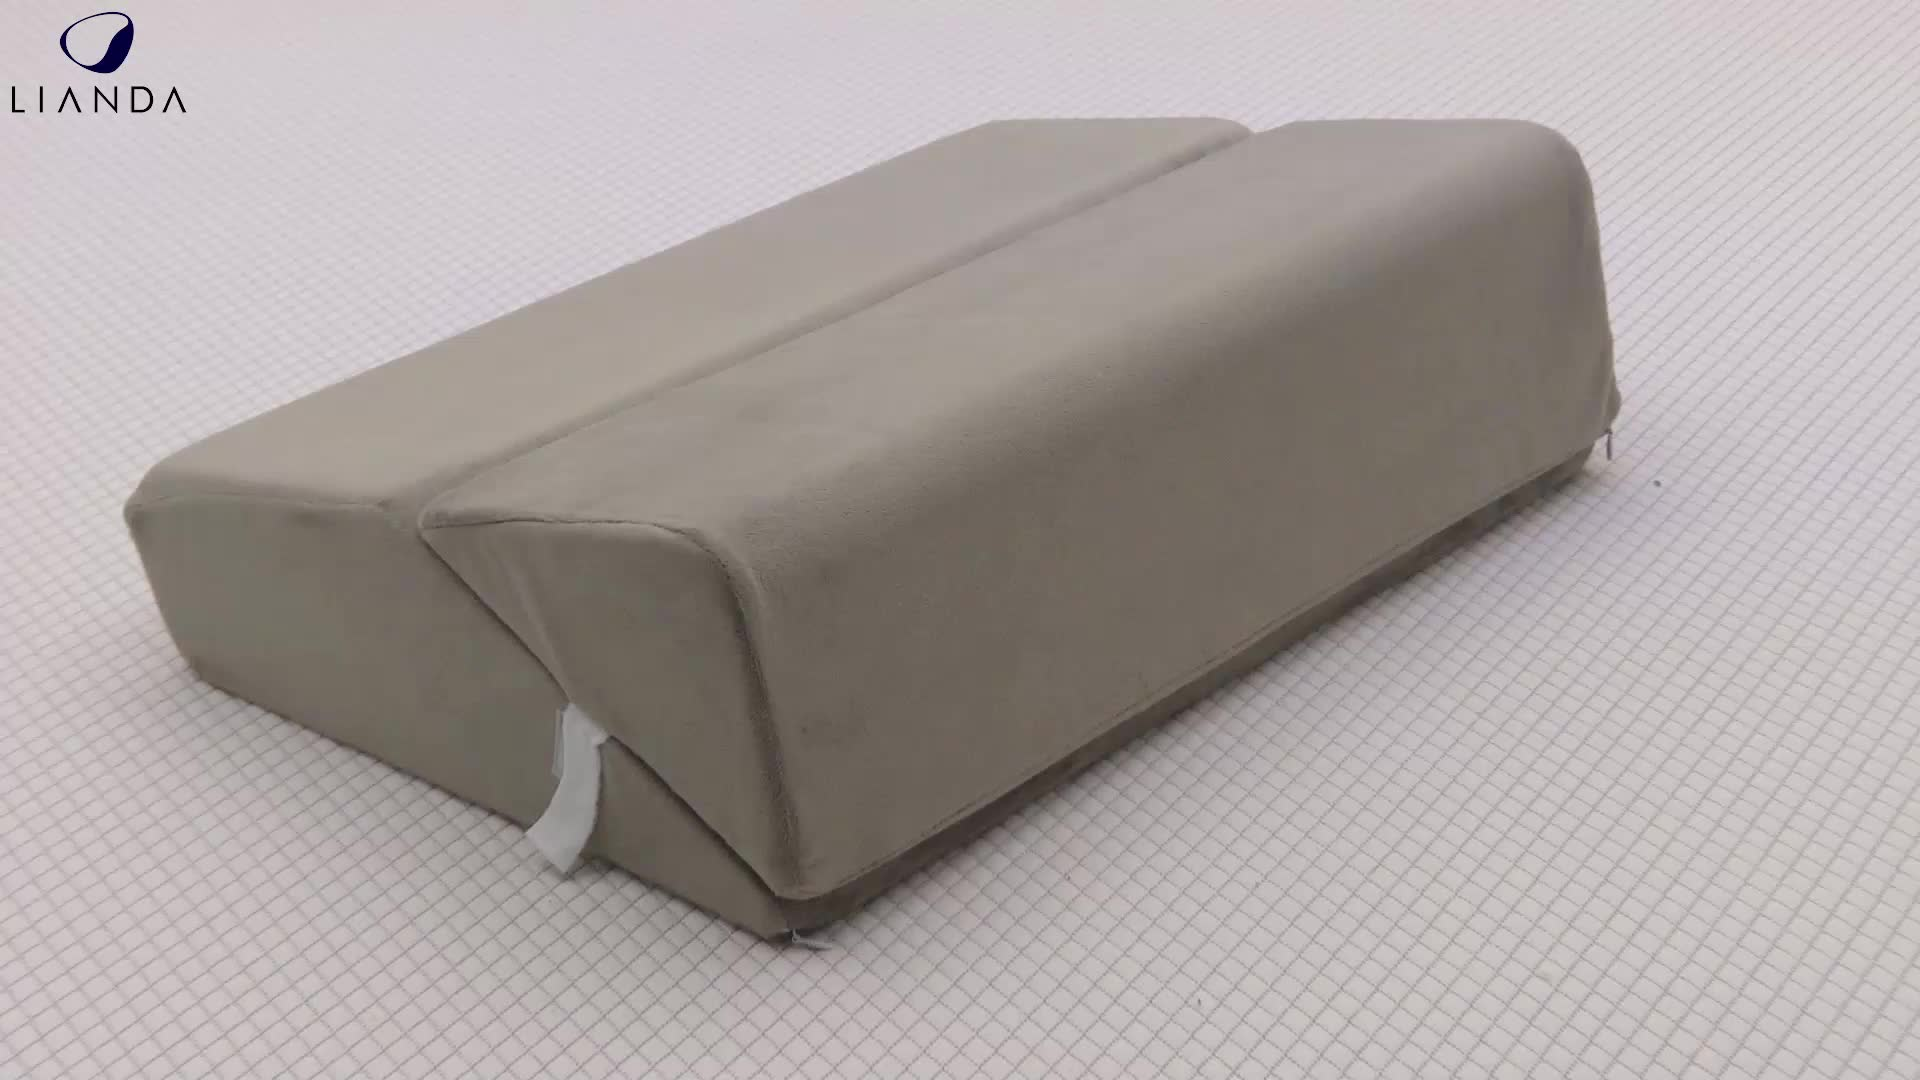 foam pillow for memory bed reliever leg spine lower pillows with wedge back pain